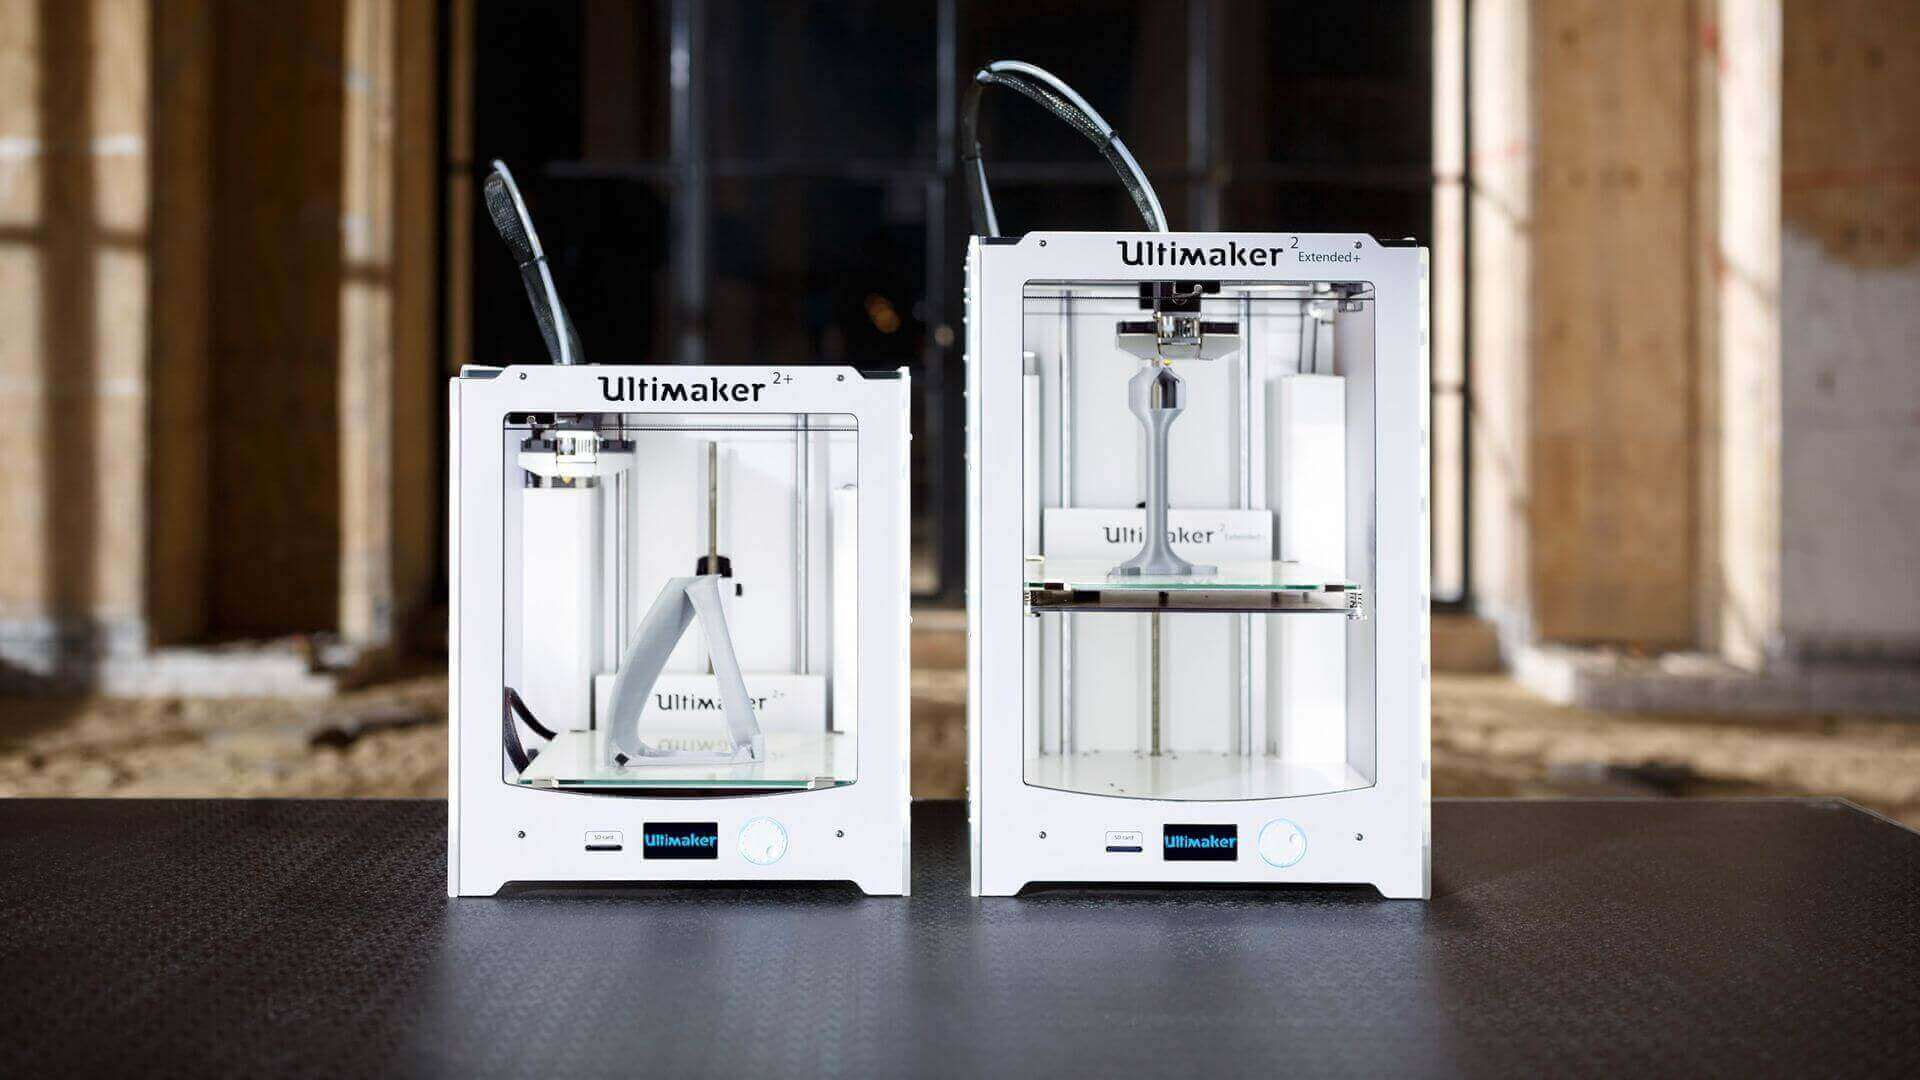 3D Printer Manufacturer Ultimaker Receives €15 Million Loan | All3DP